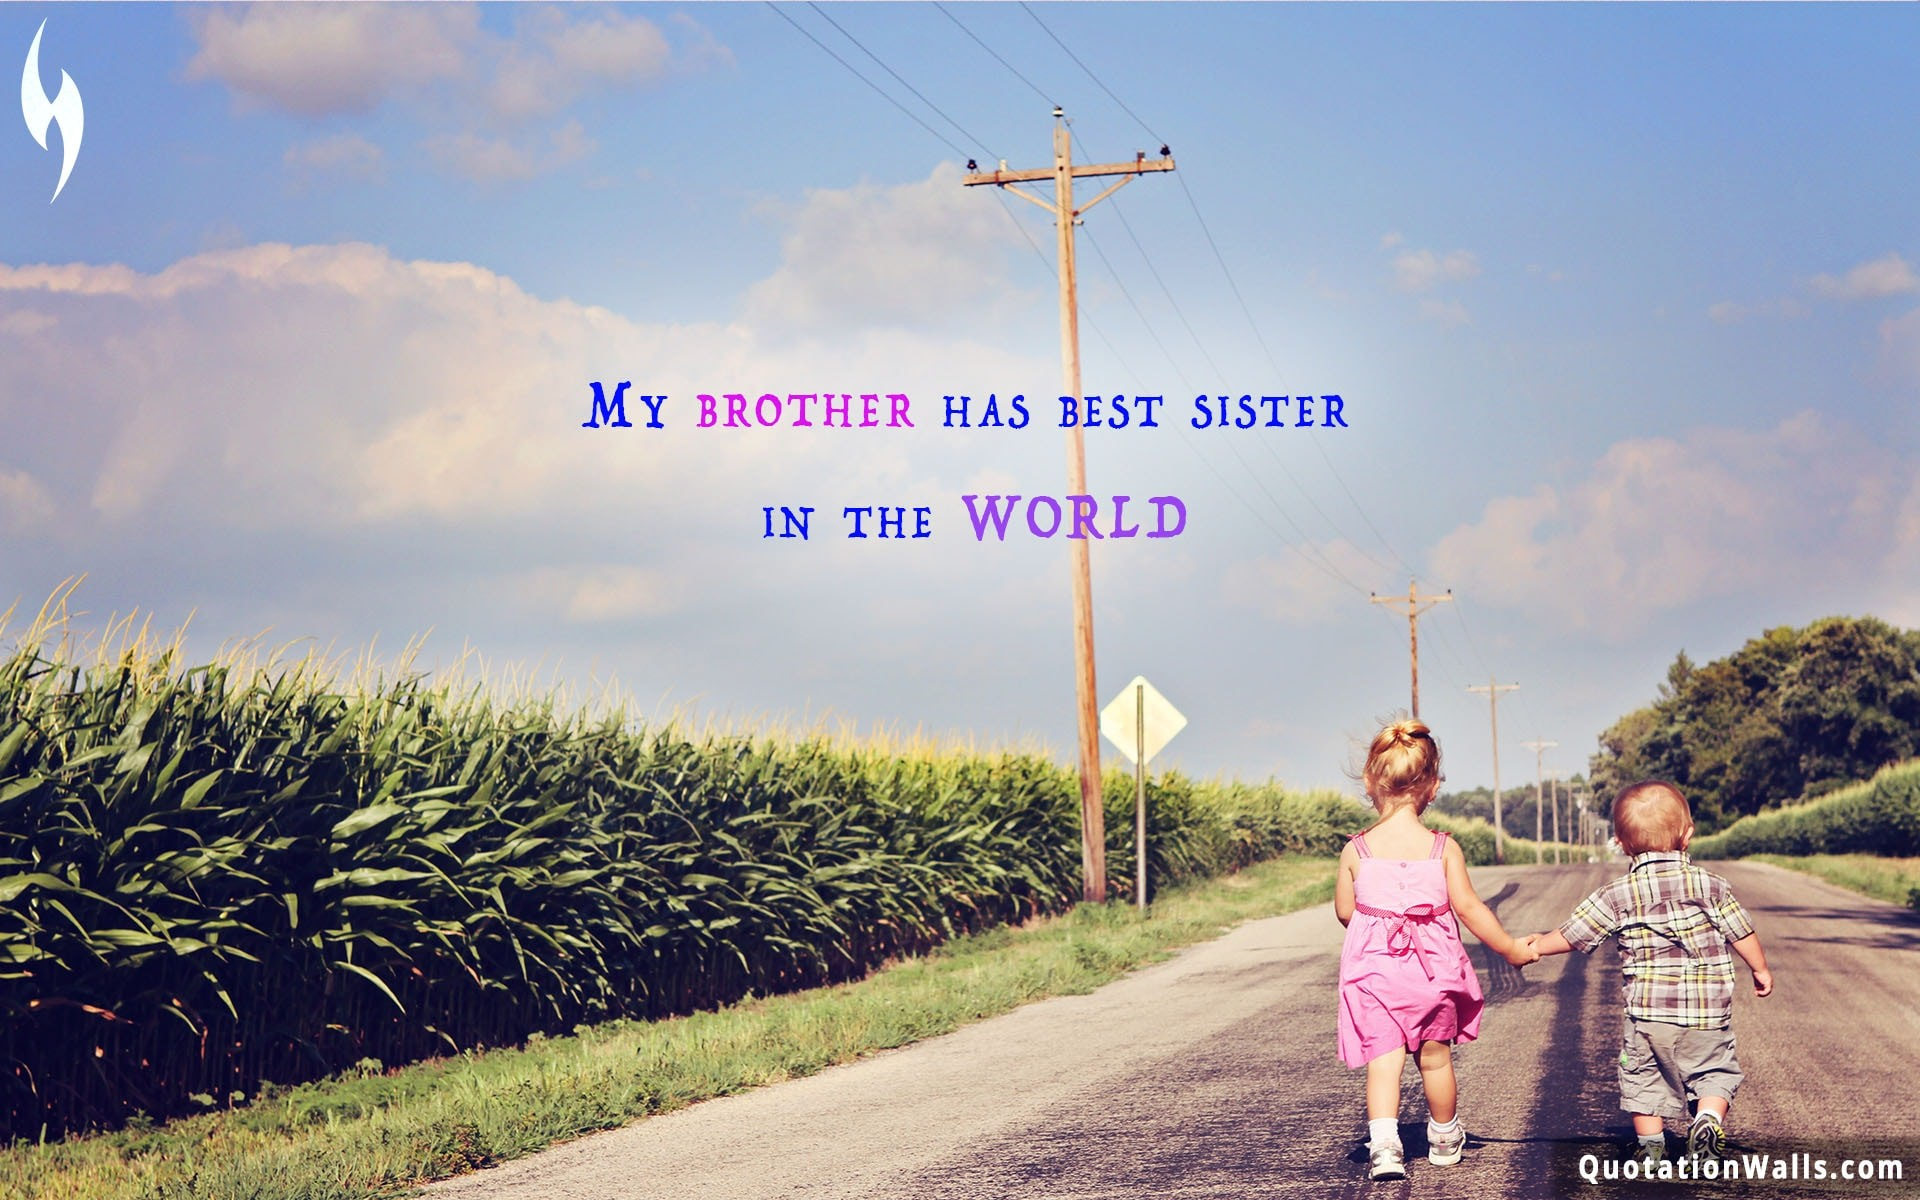 Brother quote: My brother has best sister in the world.